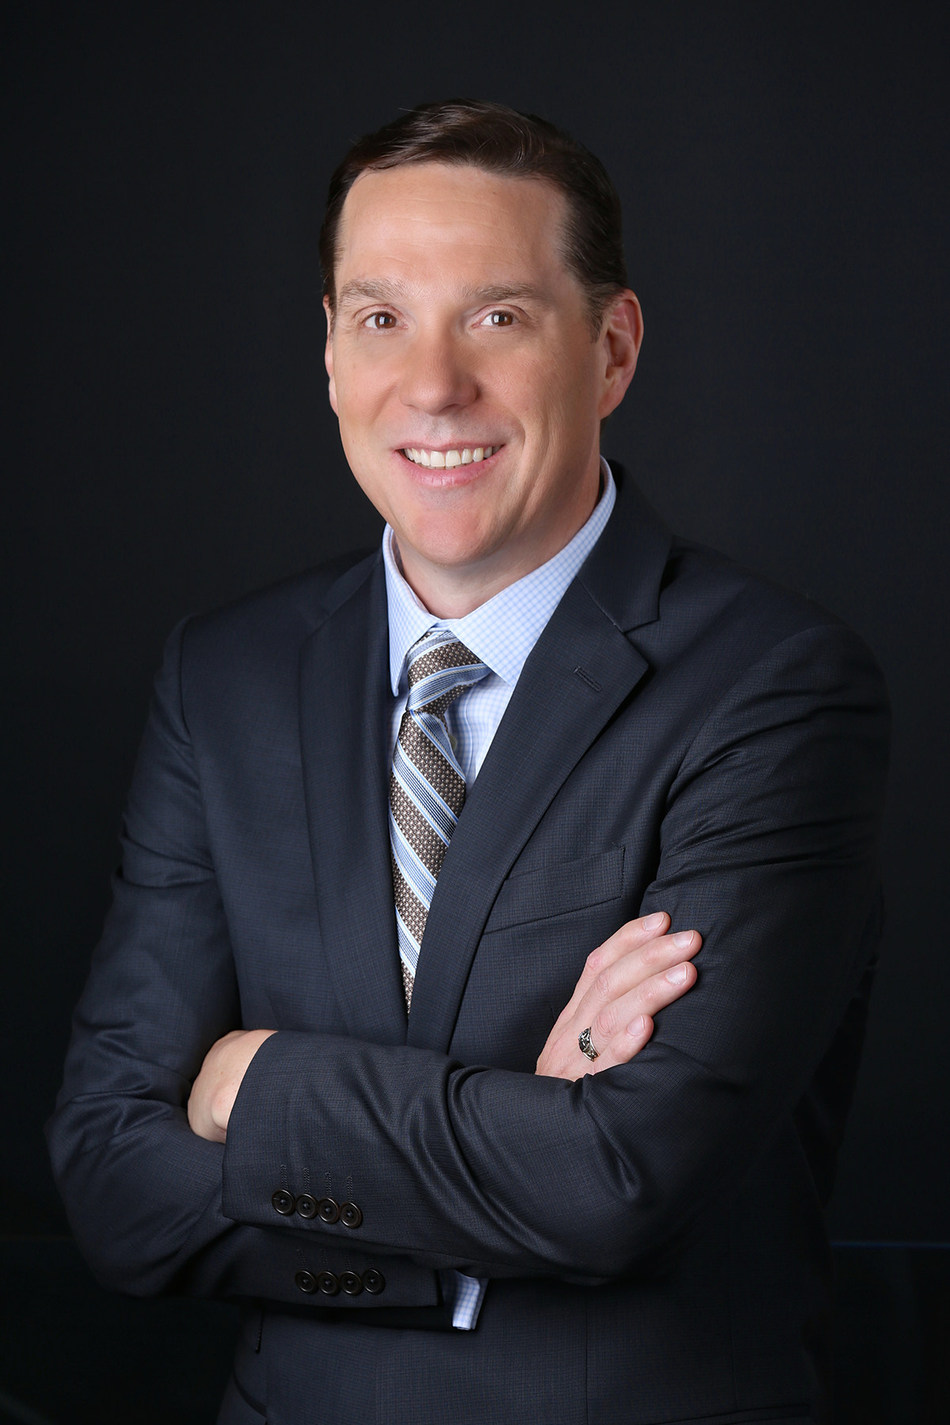 Ron L. Frey, CDK Global's chief strategy officer